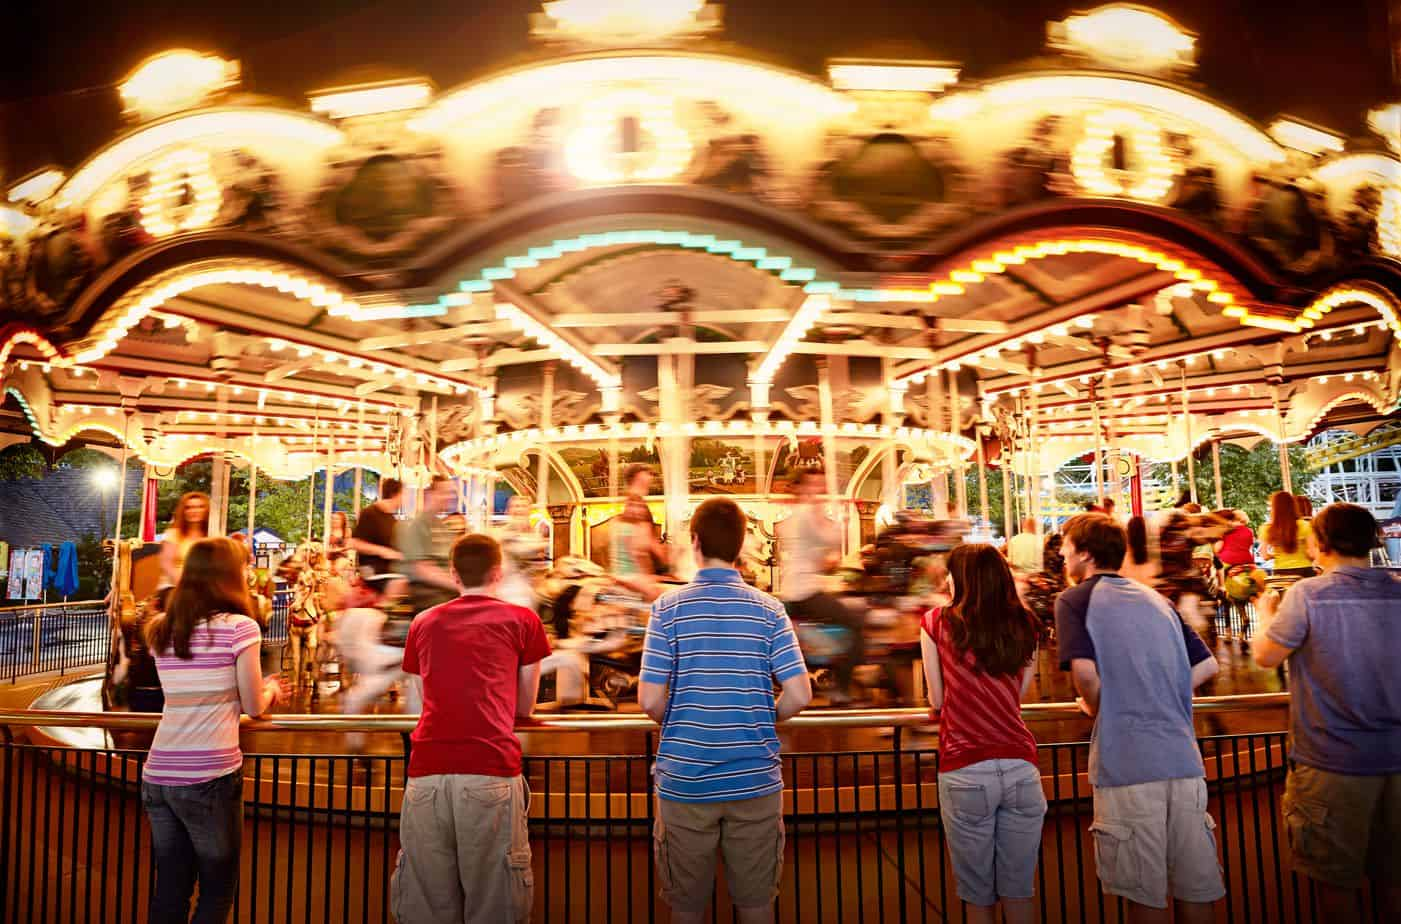 hersheypark carousel at night